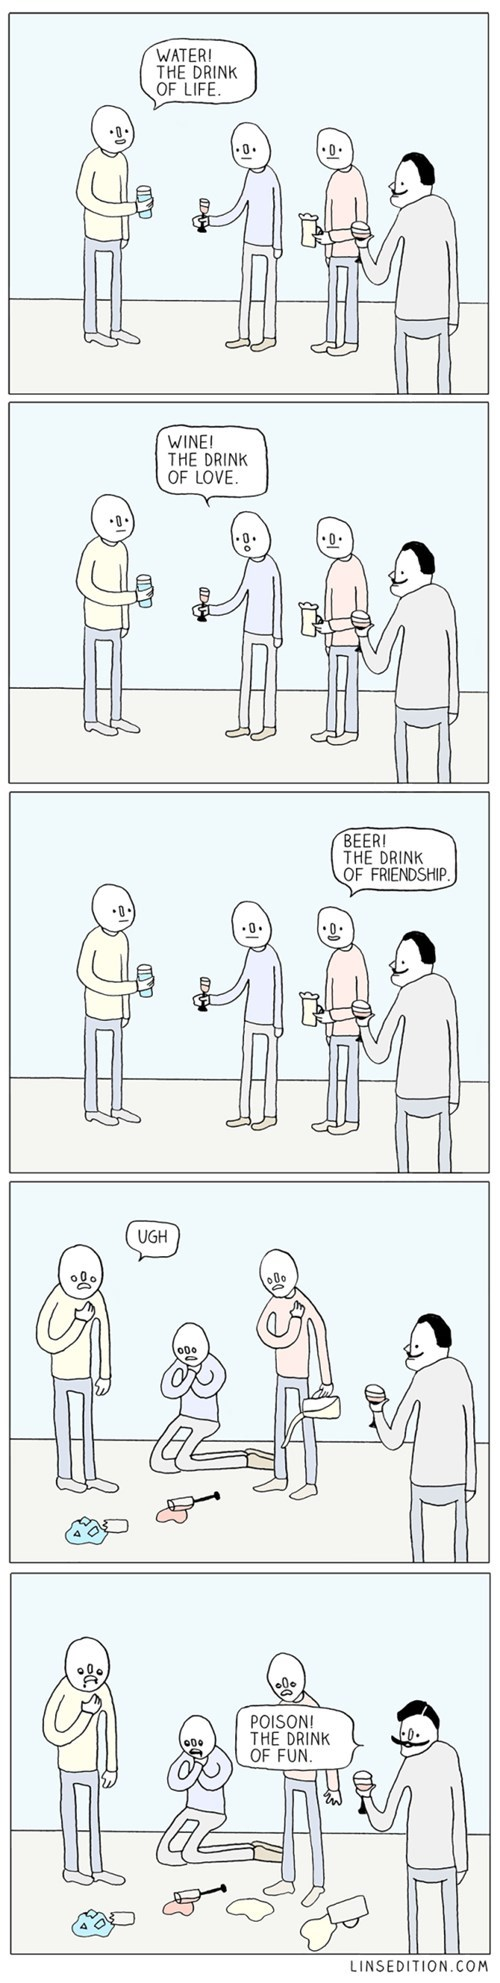 beer drinking water poison wine web comics